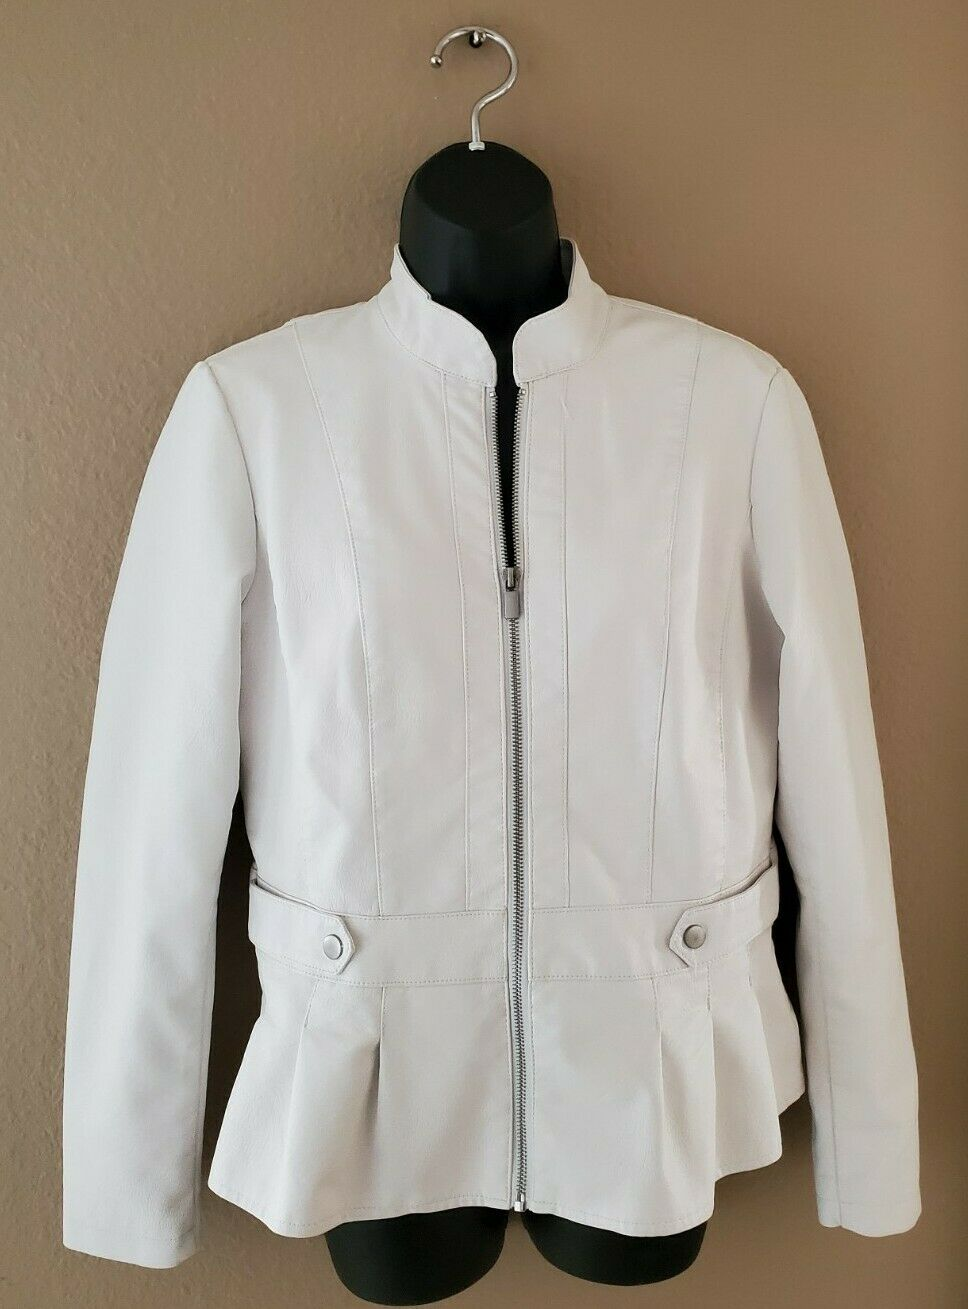 Baccini Women's Faux White Leather Long Sleeve Jacket, S